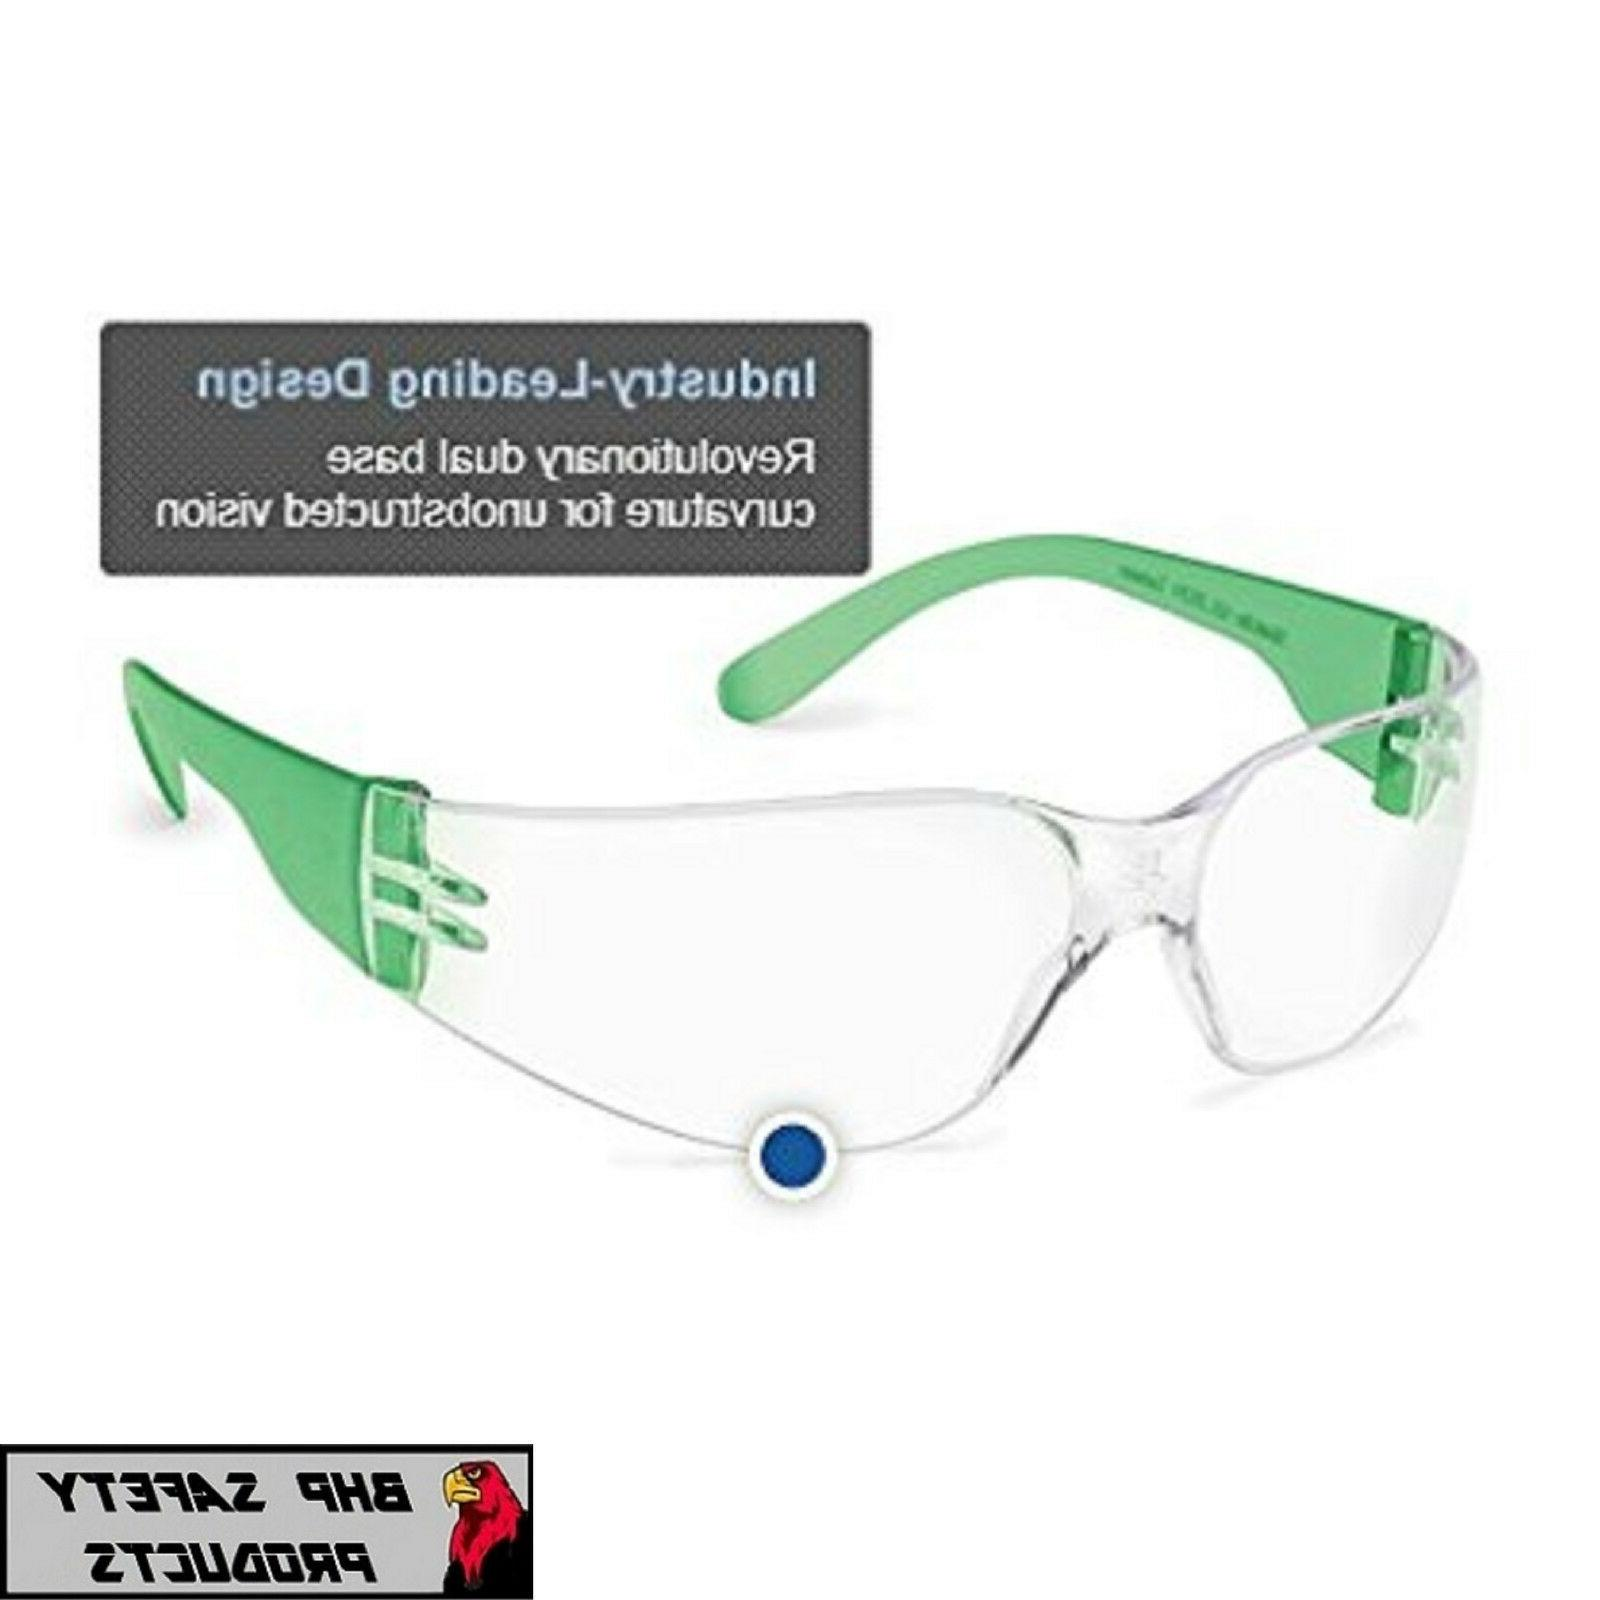 GATEWAY STARLITE SMALL SAFETY GLASSES MULTI COLOR PARTY